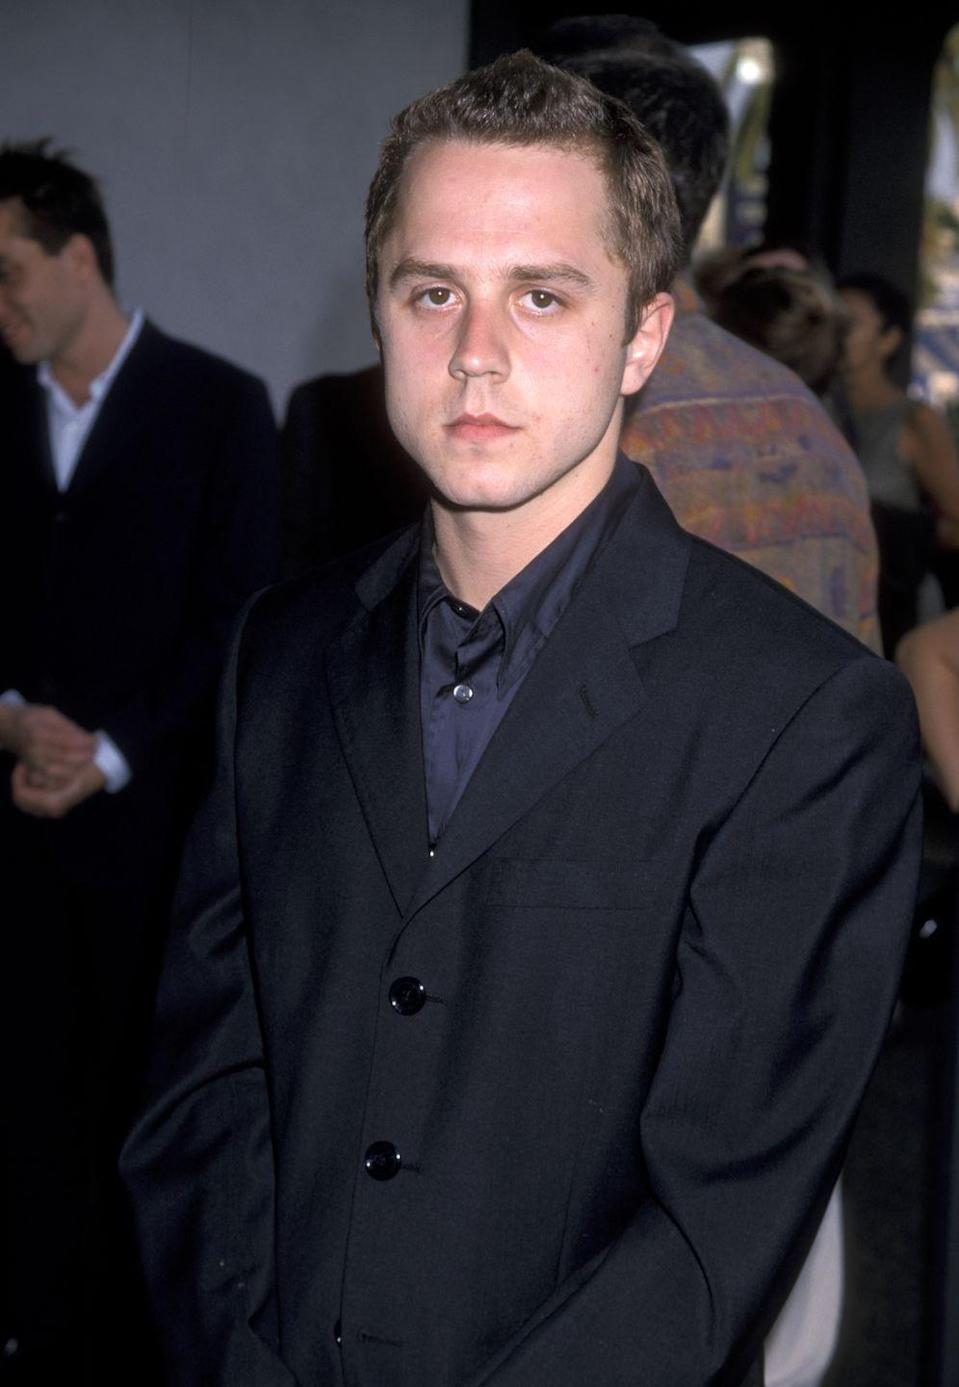 <p>Giovanni first appeared on the series in season 2 as Frank Jr., Phoebe's half brother. He continued to guest star on the series while his career was taking off with roles in blockbusters like <em>Saving Private Ryan</em> in 1998. </p>